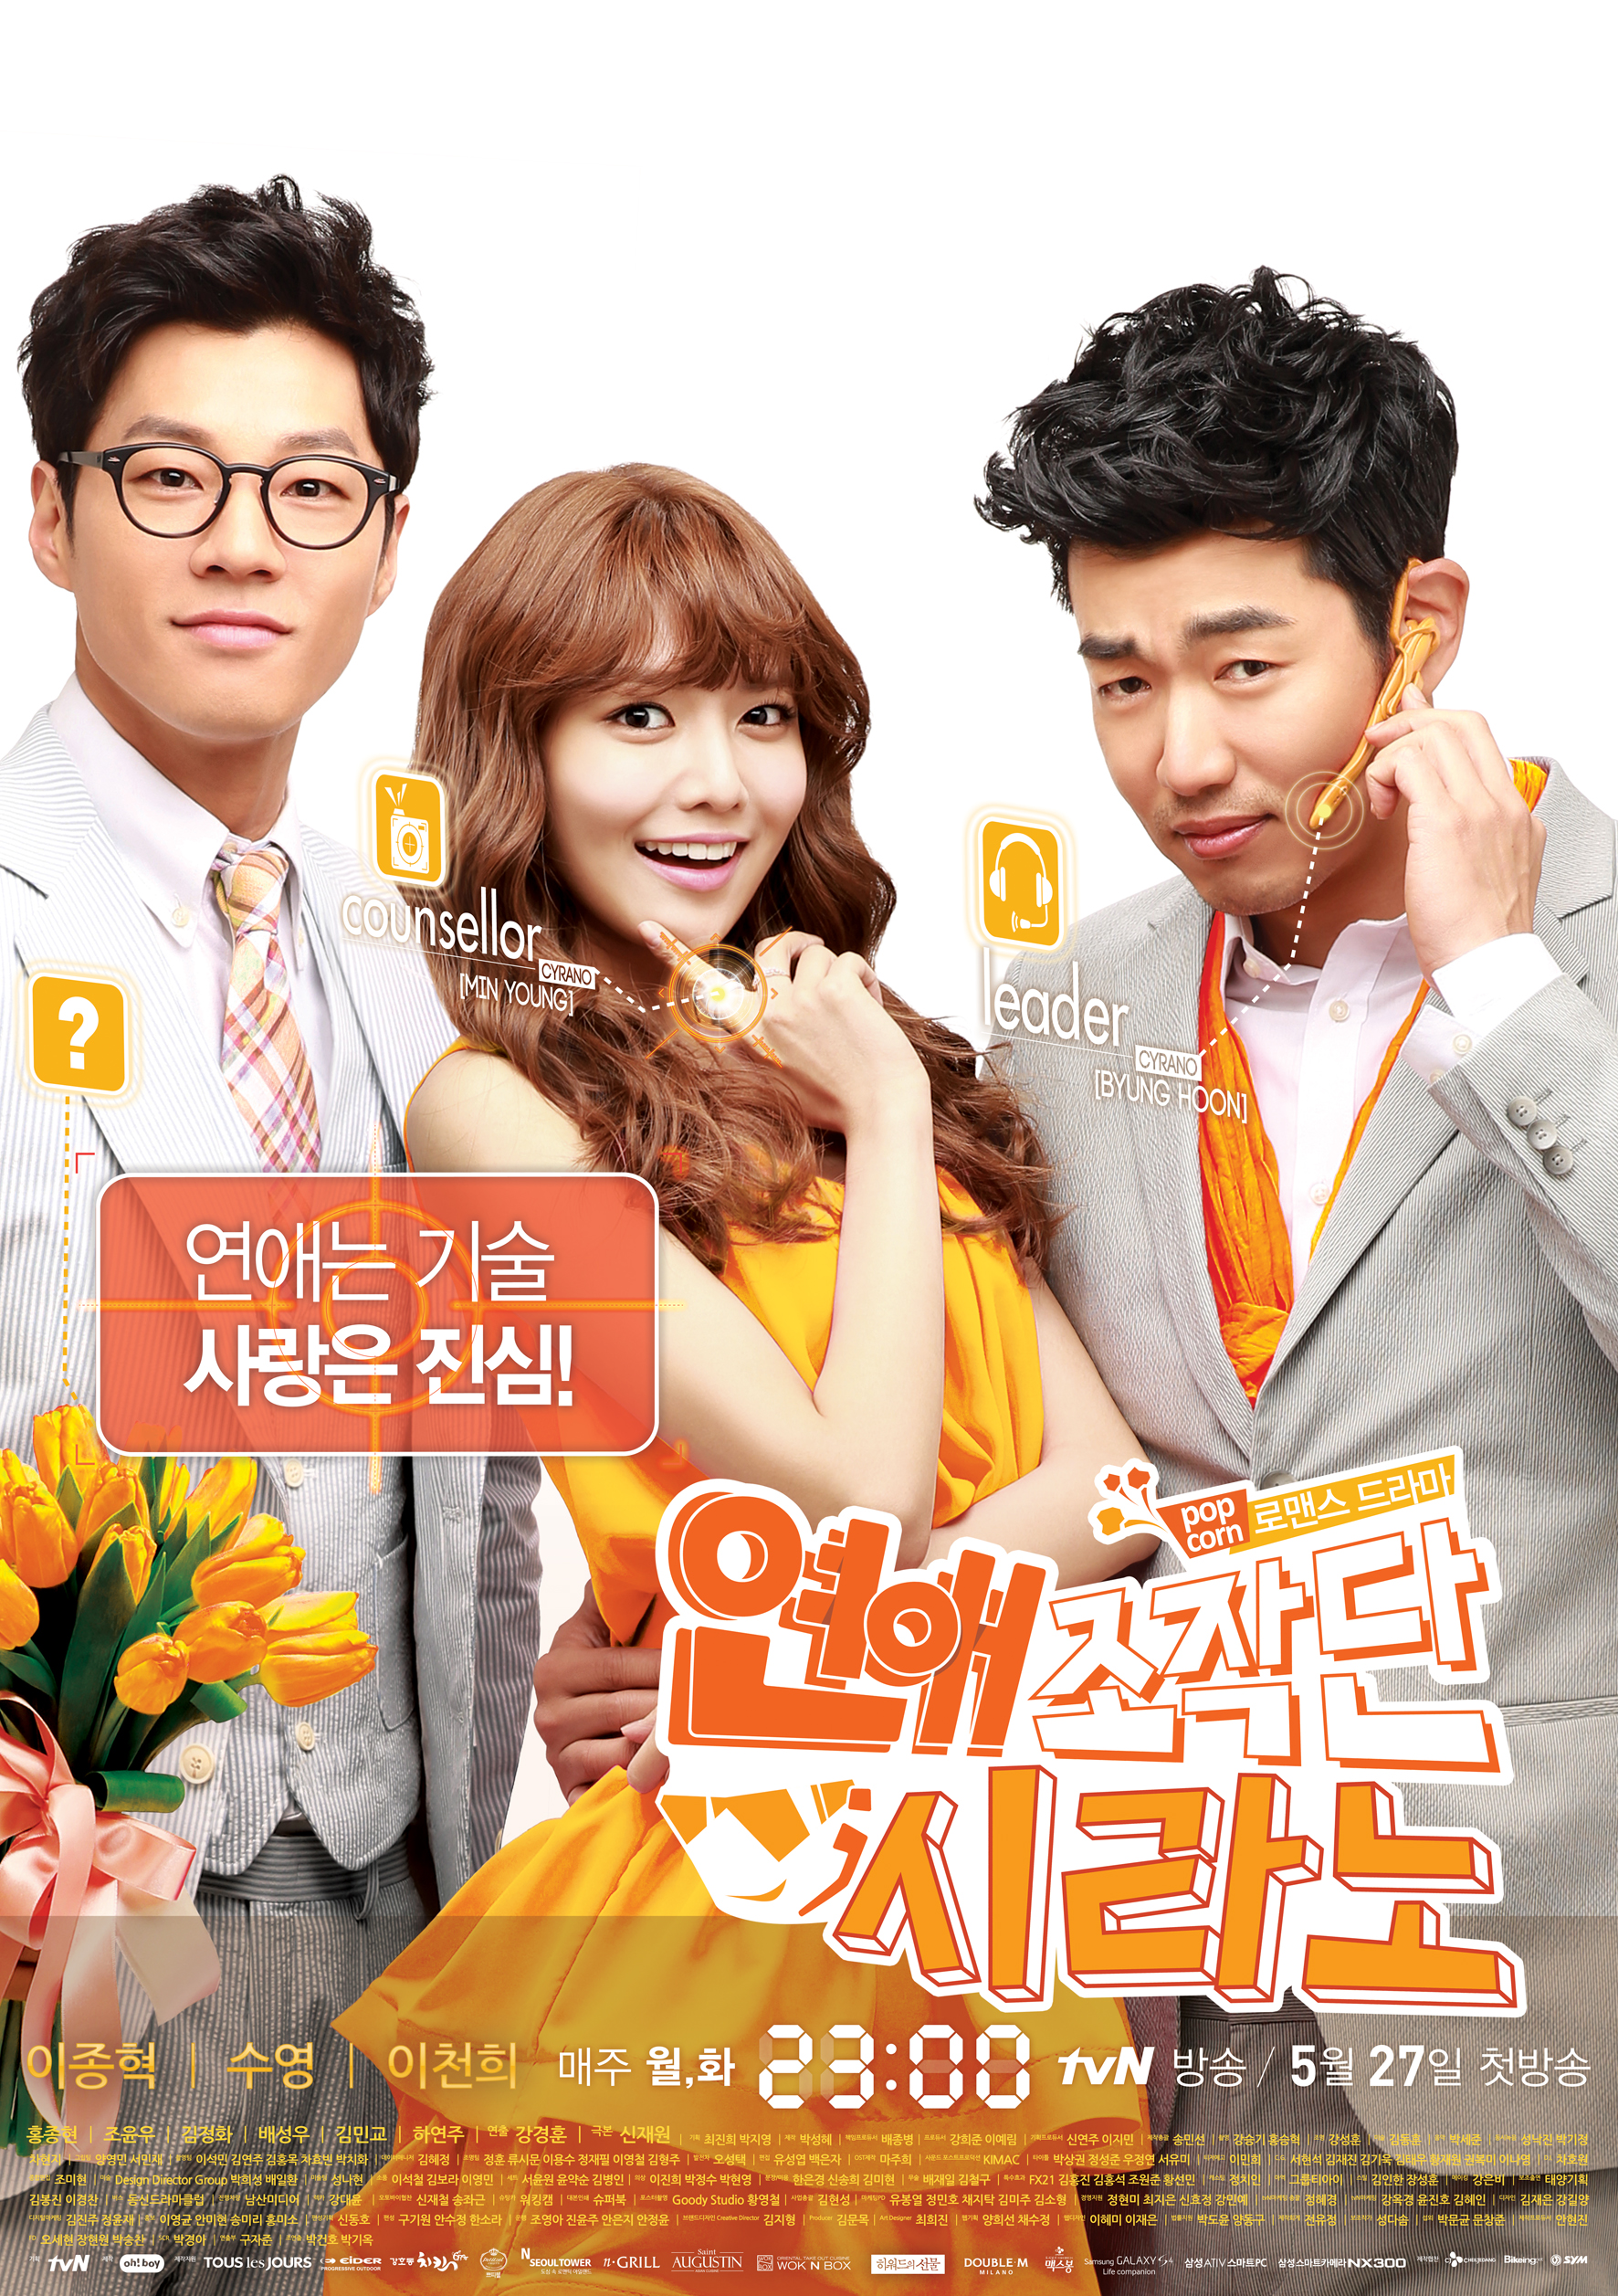 So Dating Agency Wikipedia The 99